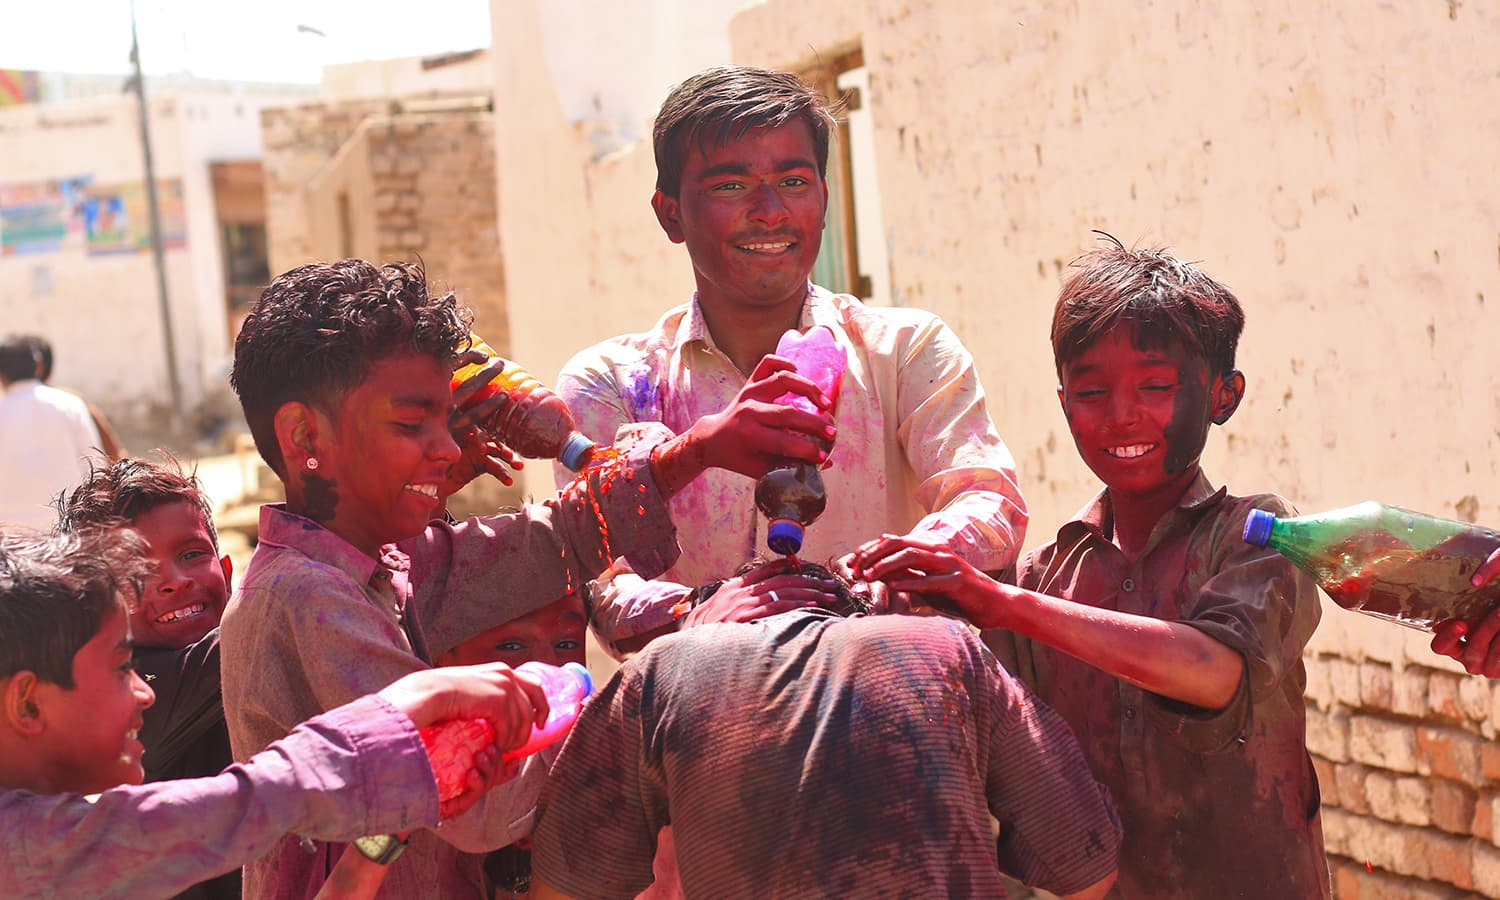 It's easy to see why Holi is a fun event for kids.